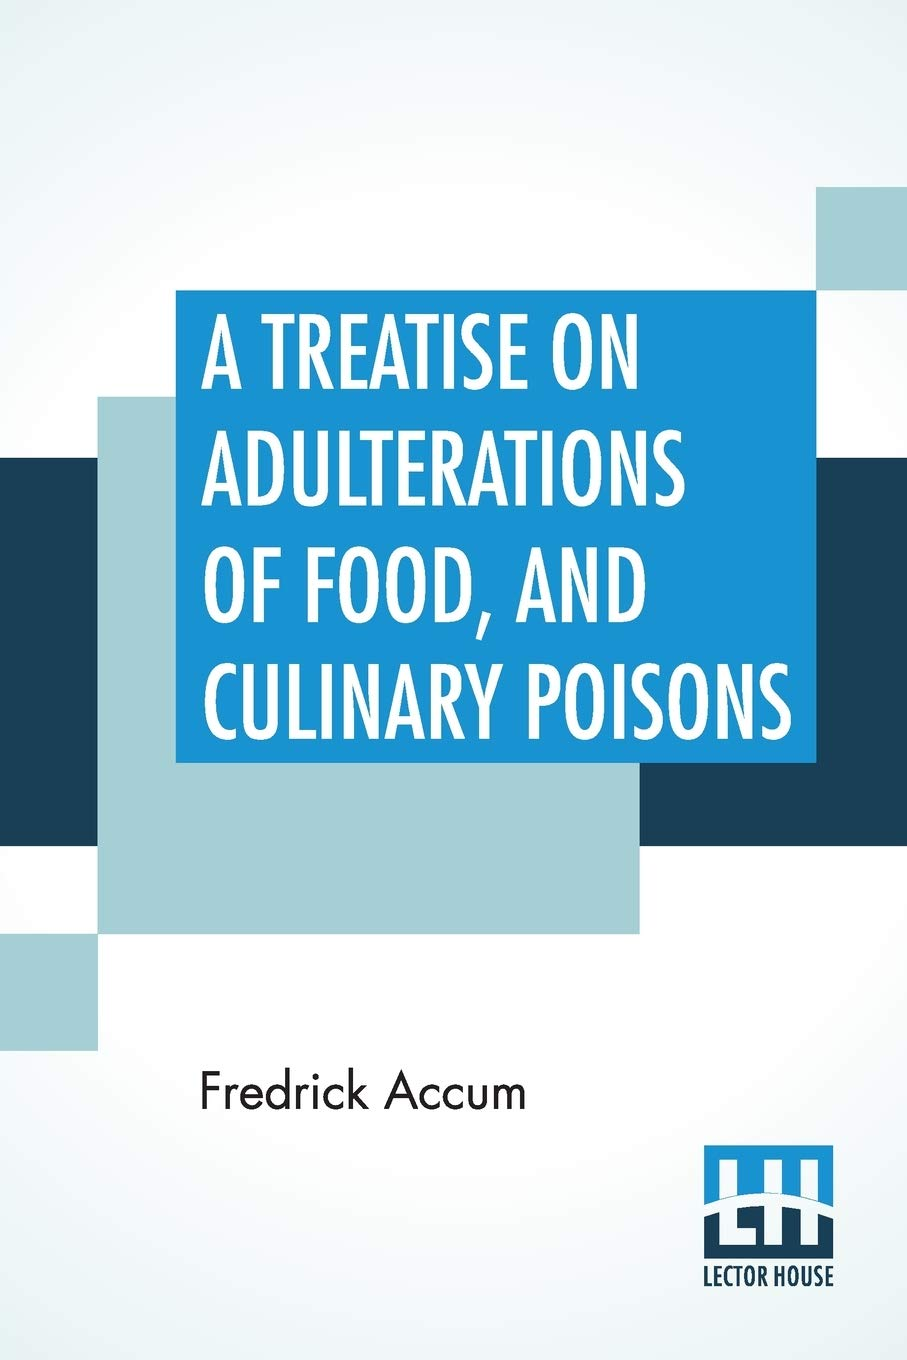 A Treatise On Adulterations Of Food, And Culinary Poisons: Exhibiting The Fraudulent Sophistications Of Bread, Beer, Wine, Spiritous Liquors, Tea, ... Olive Oil, Pickles, And Other Articles Emplo